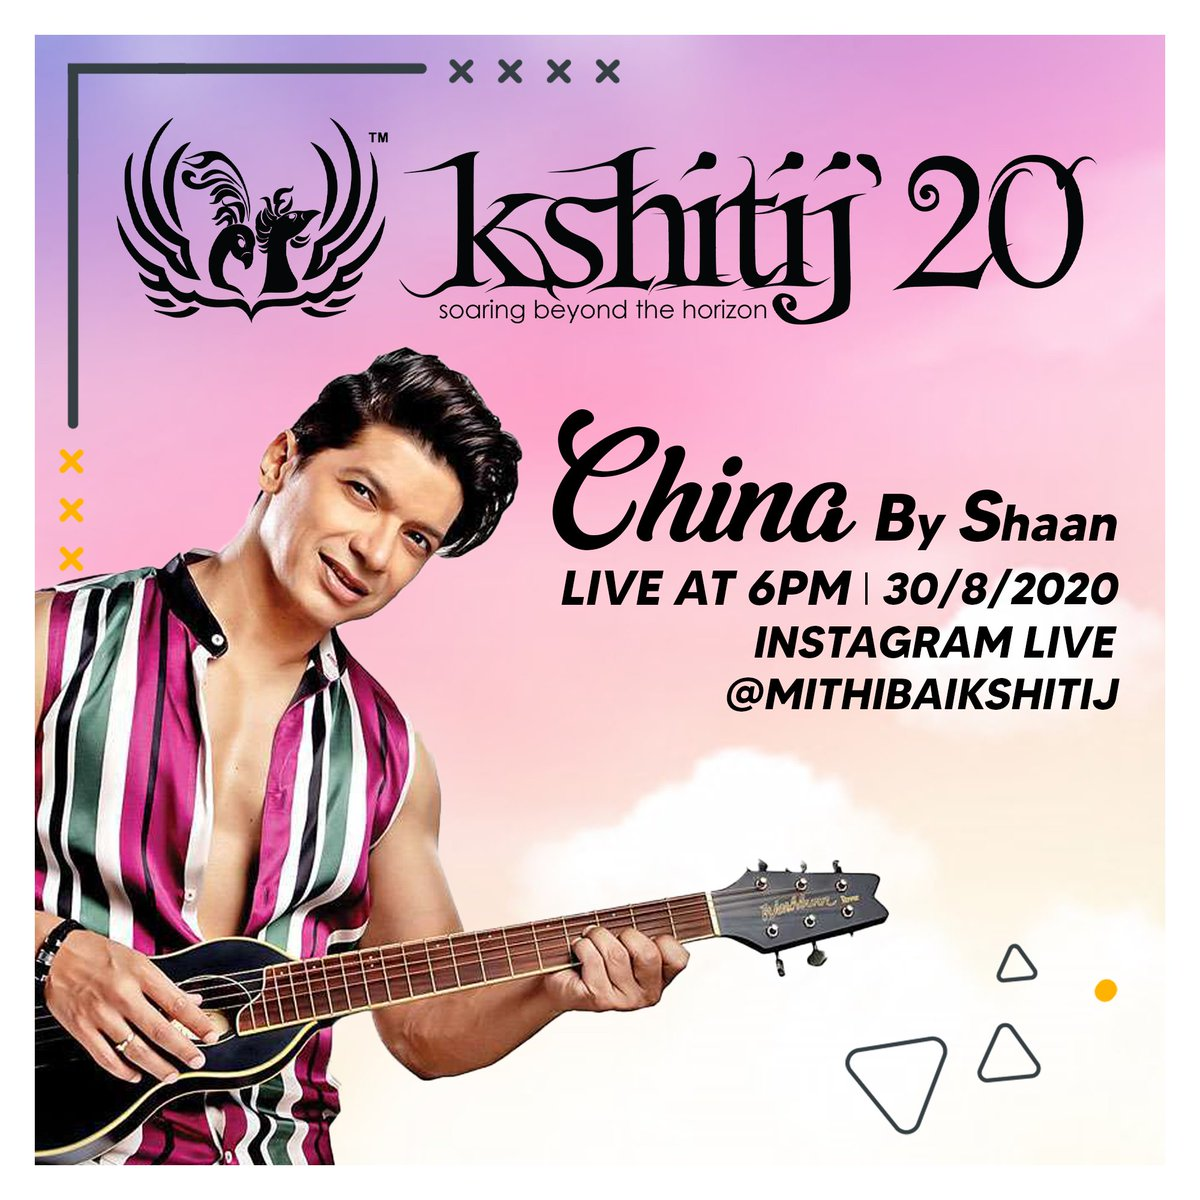 Ever since he set foot in the industry more than 20 years ago, Shaan has been one of the most surreal singer this country has ever seen.  Join Team Kshitij as we go Live with him today at 6 p.m. to promote his recent banger, 'China'. #kshitij20 #mithibaikshitij #sapnokasafar https://t.co/fwx3kZsf9y